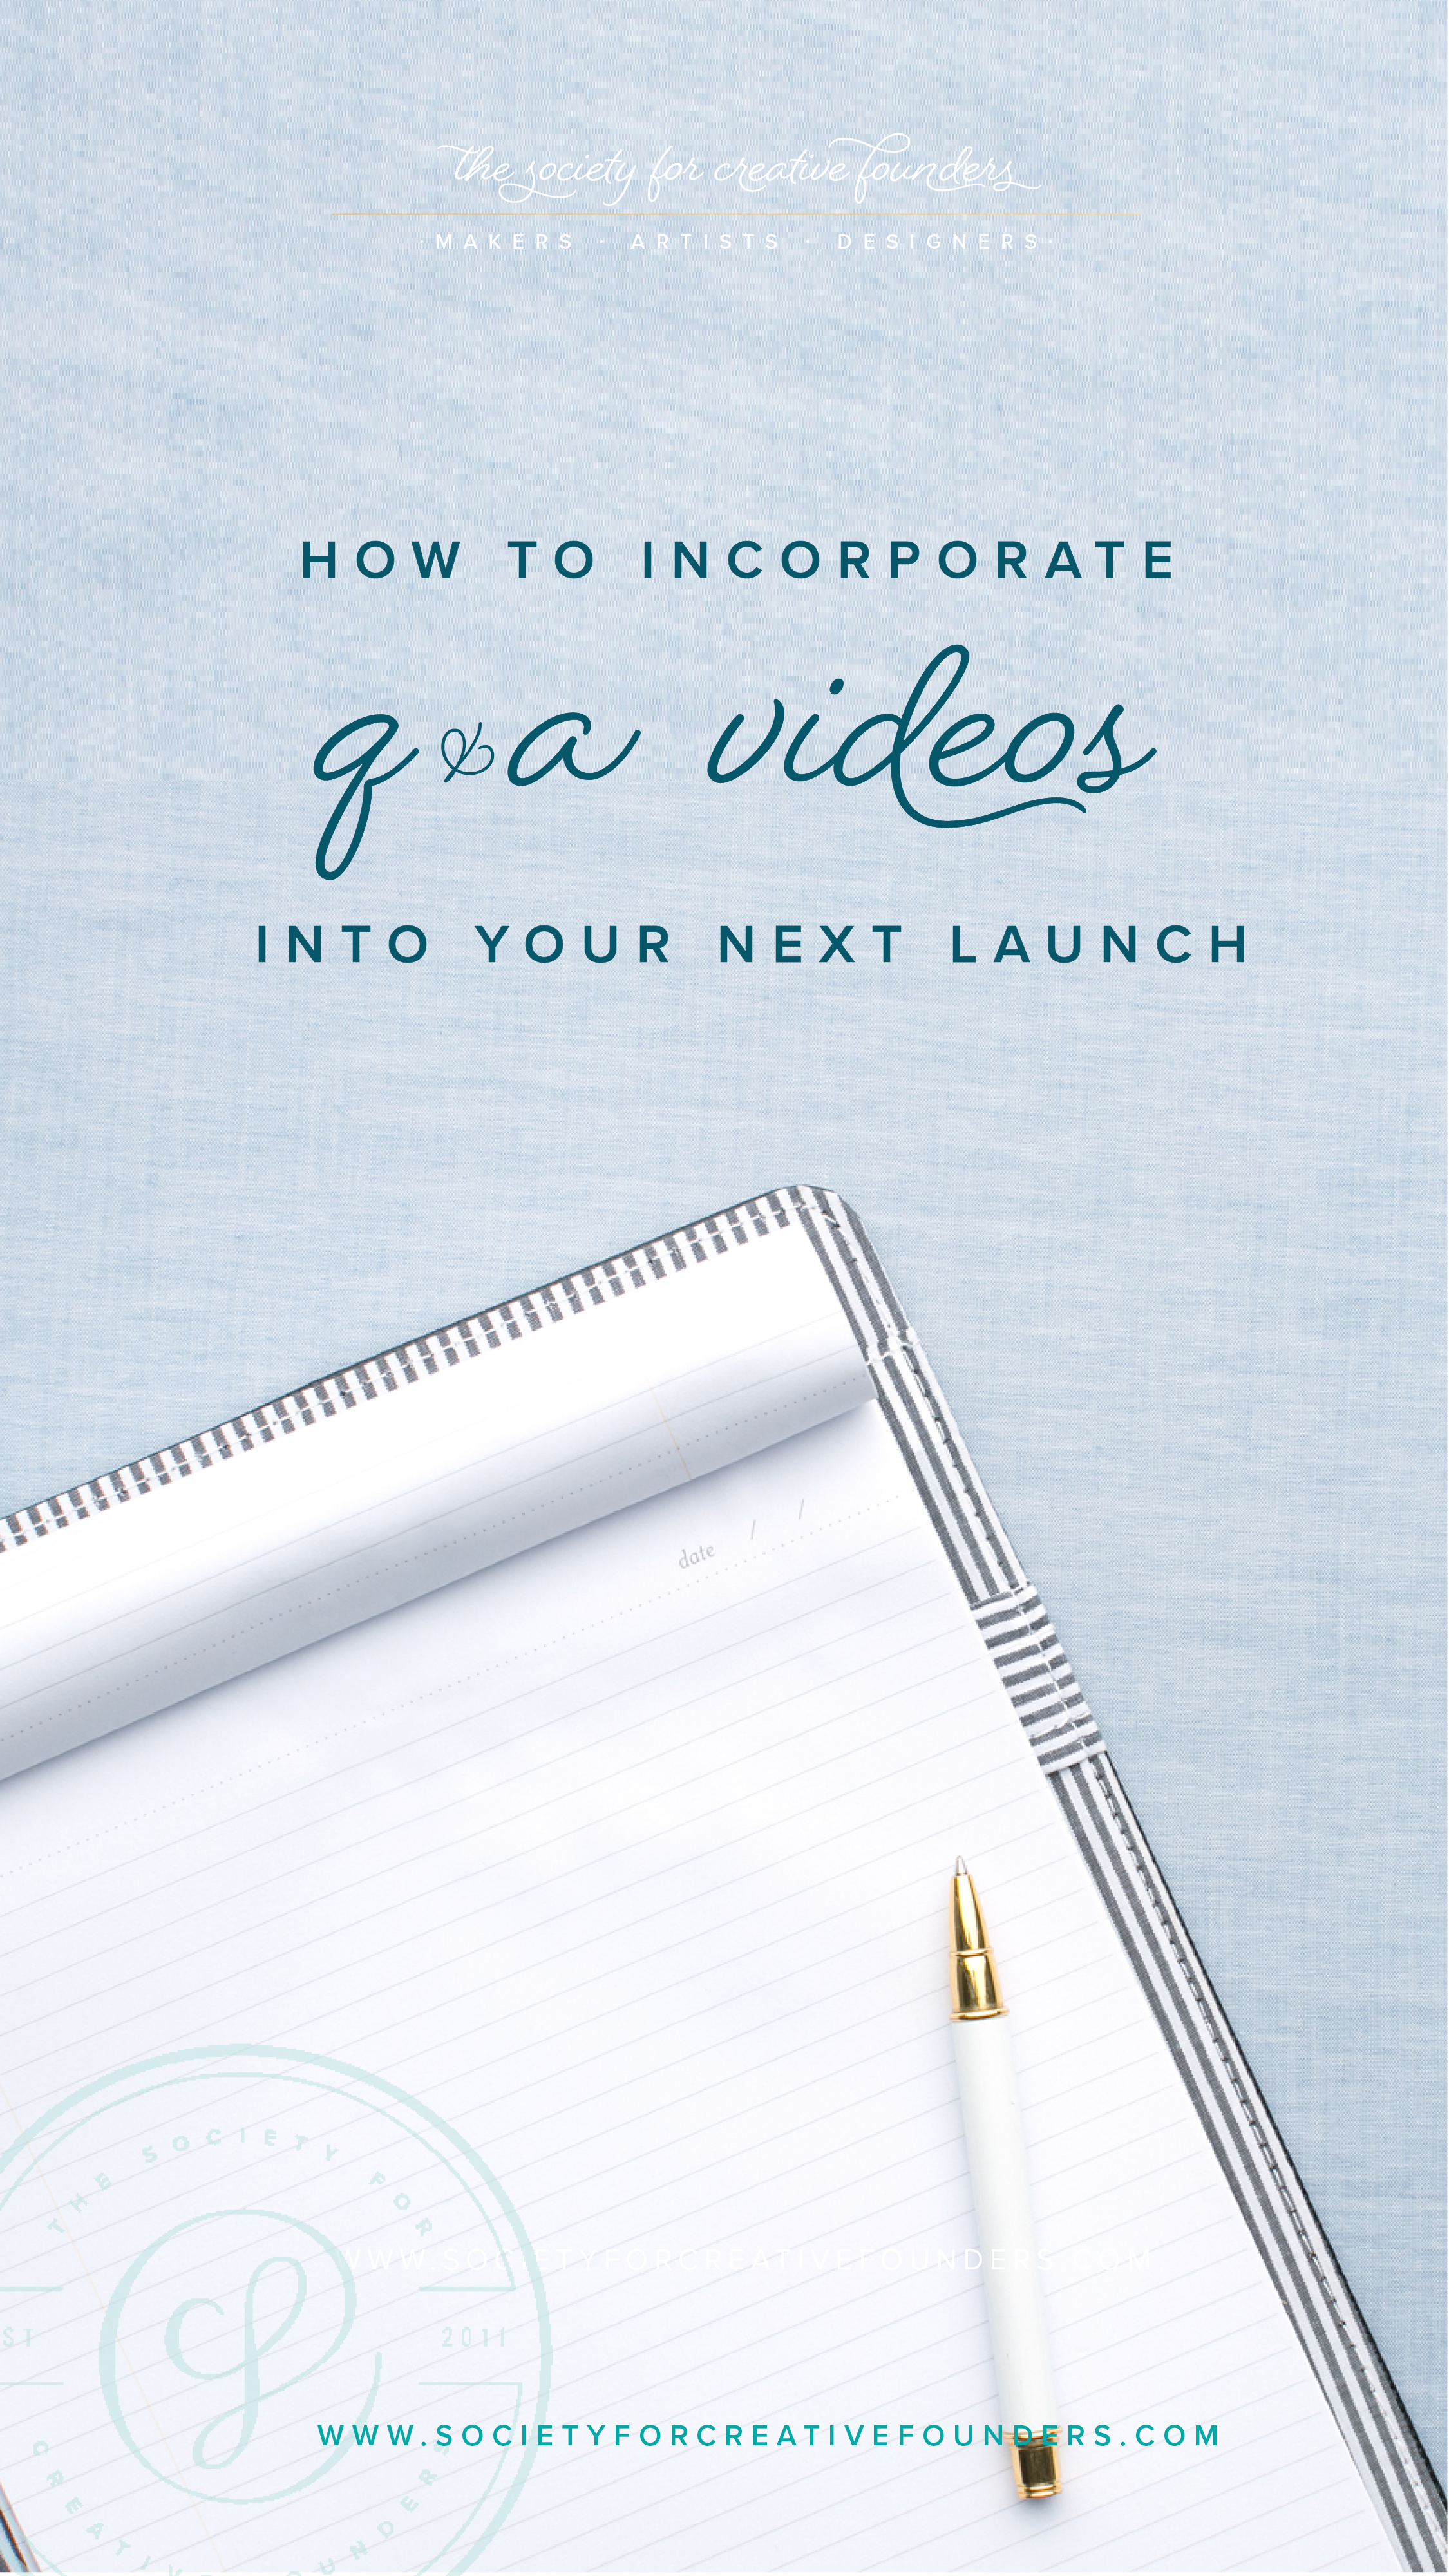 How Q and A videos can help with a product launch - guest post by Jessica Freeman